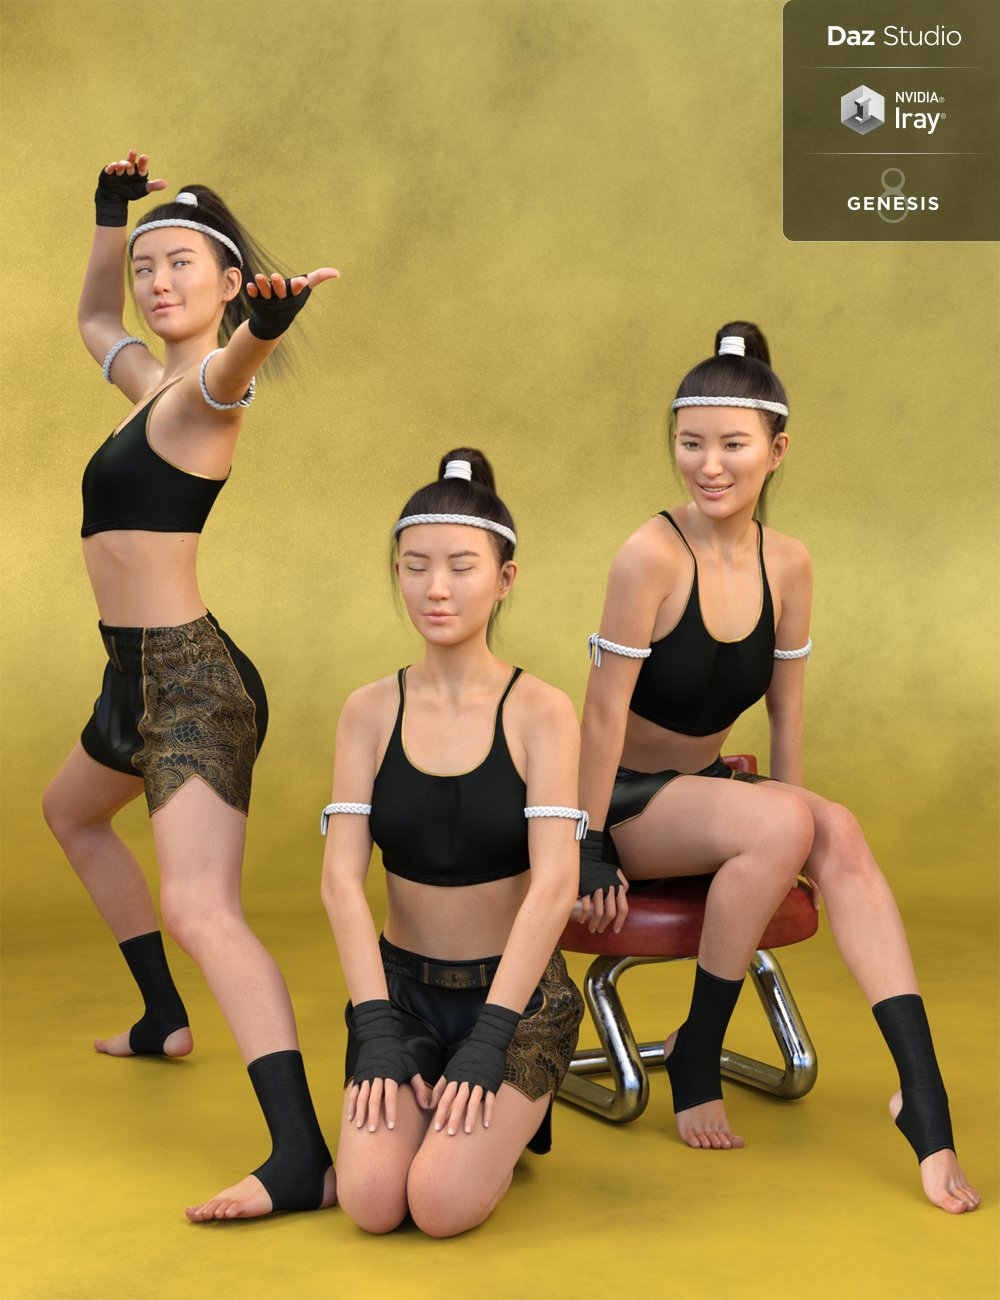 Tai Chi and Everyday Poses and Expressions for Mei Lin 8 and Genesis 8 Female(s) by: Skyewolf, 3D Models by Daz 3D